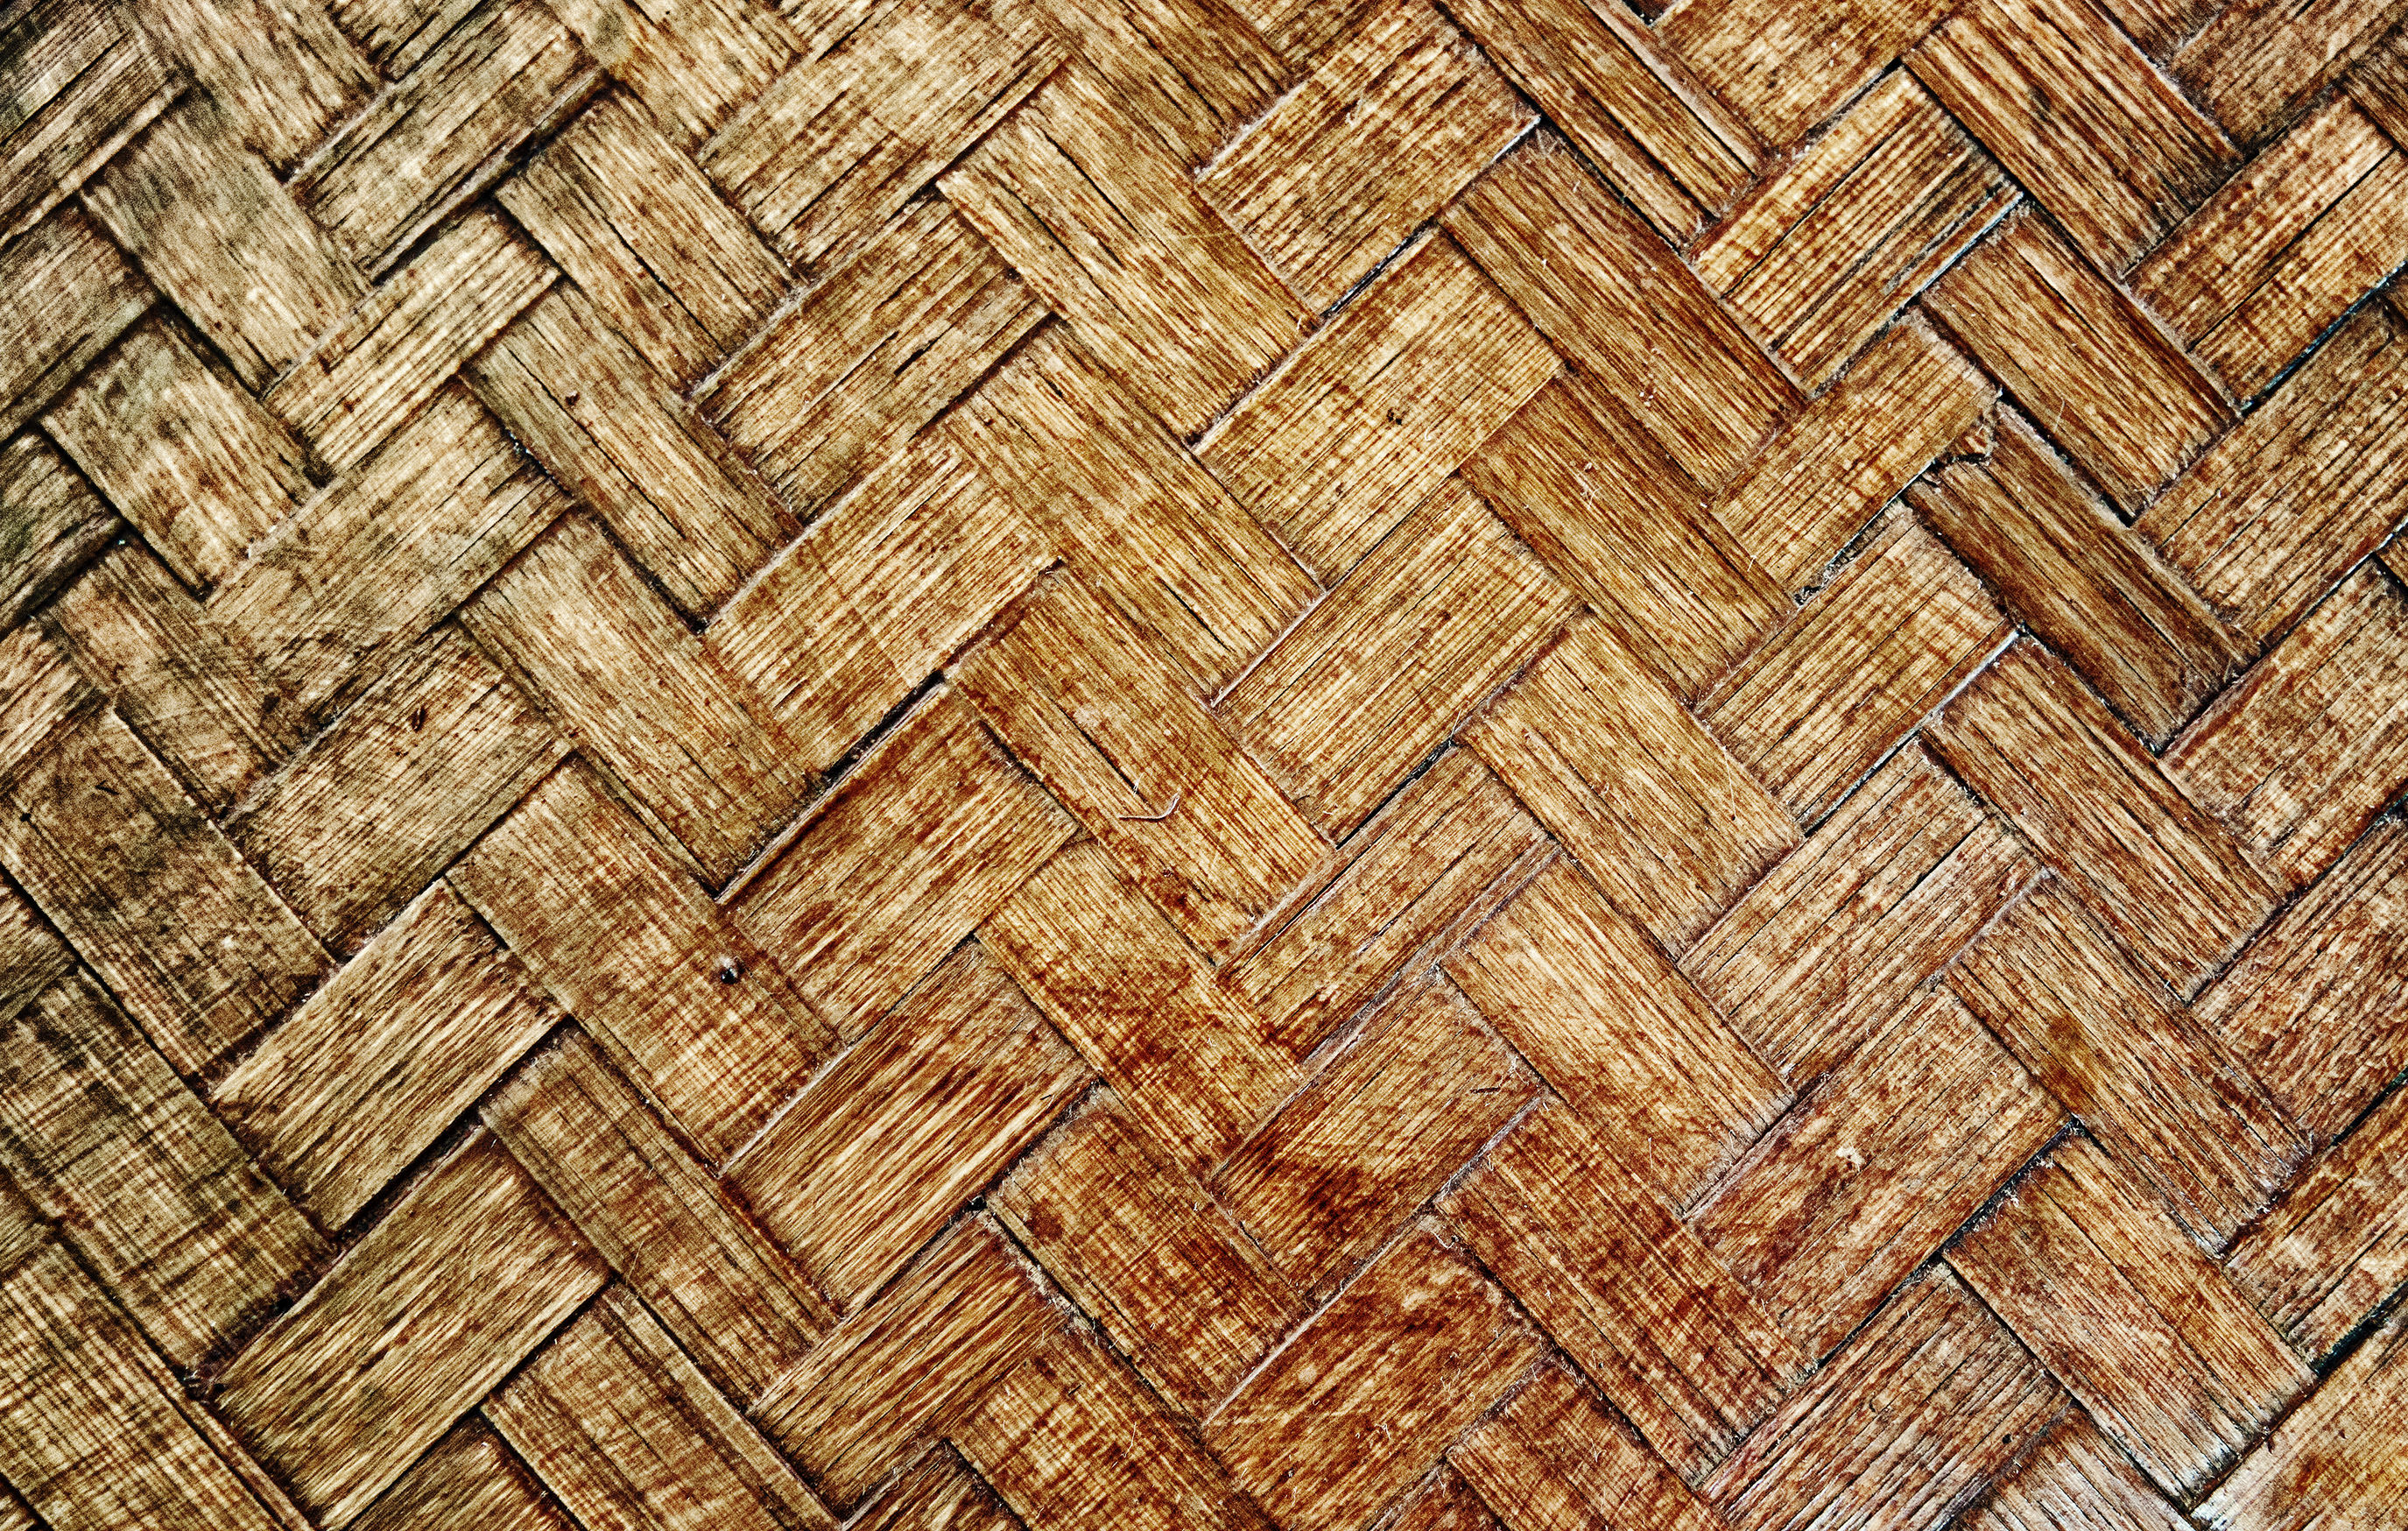 24 Bamboo Textures Patterns Backgrounds Design Trends